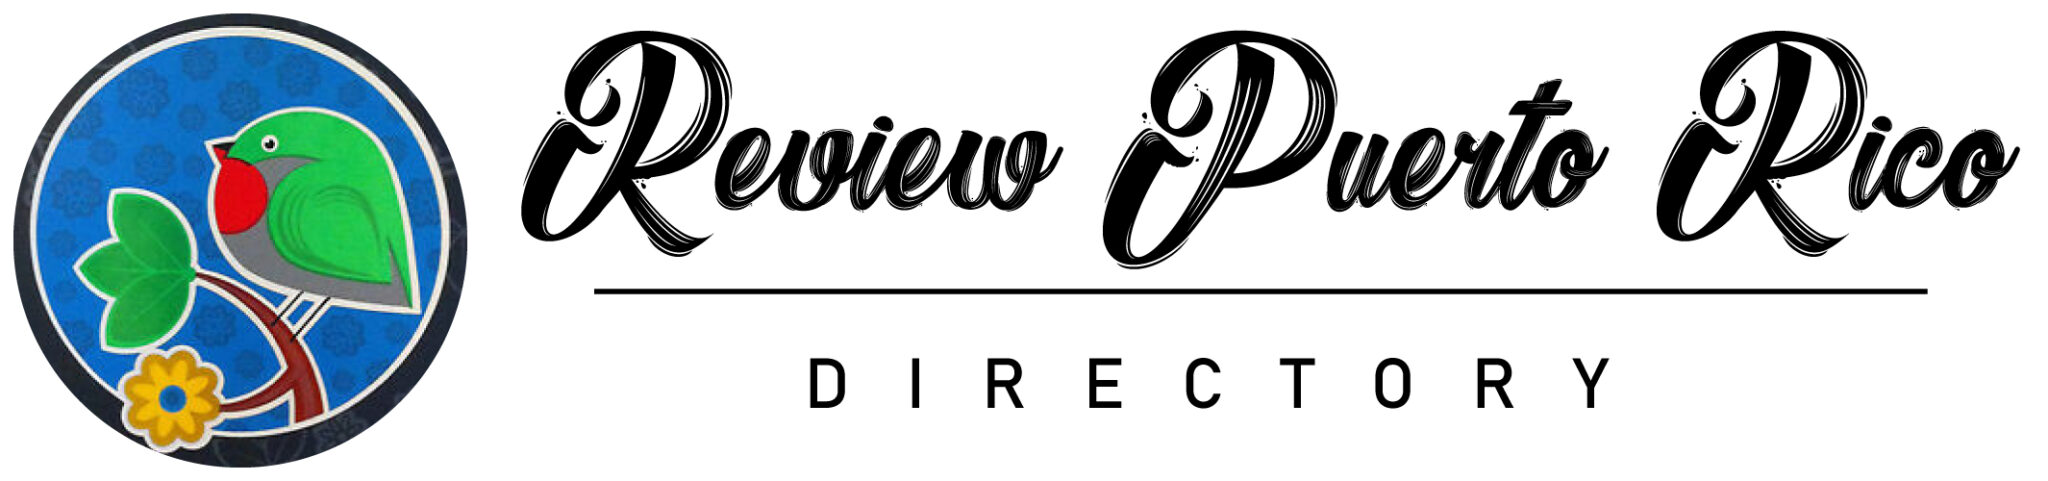 Review Puerto Rico Directory | Find and Review local Puerto Rico Businesses|